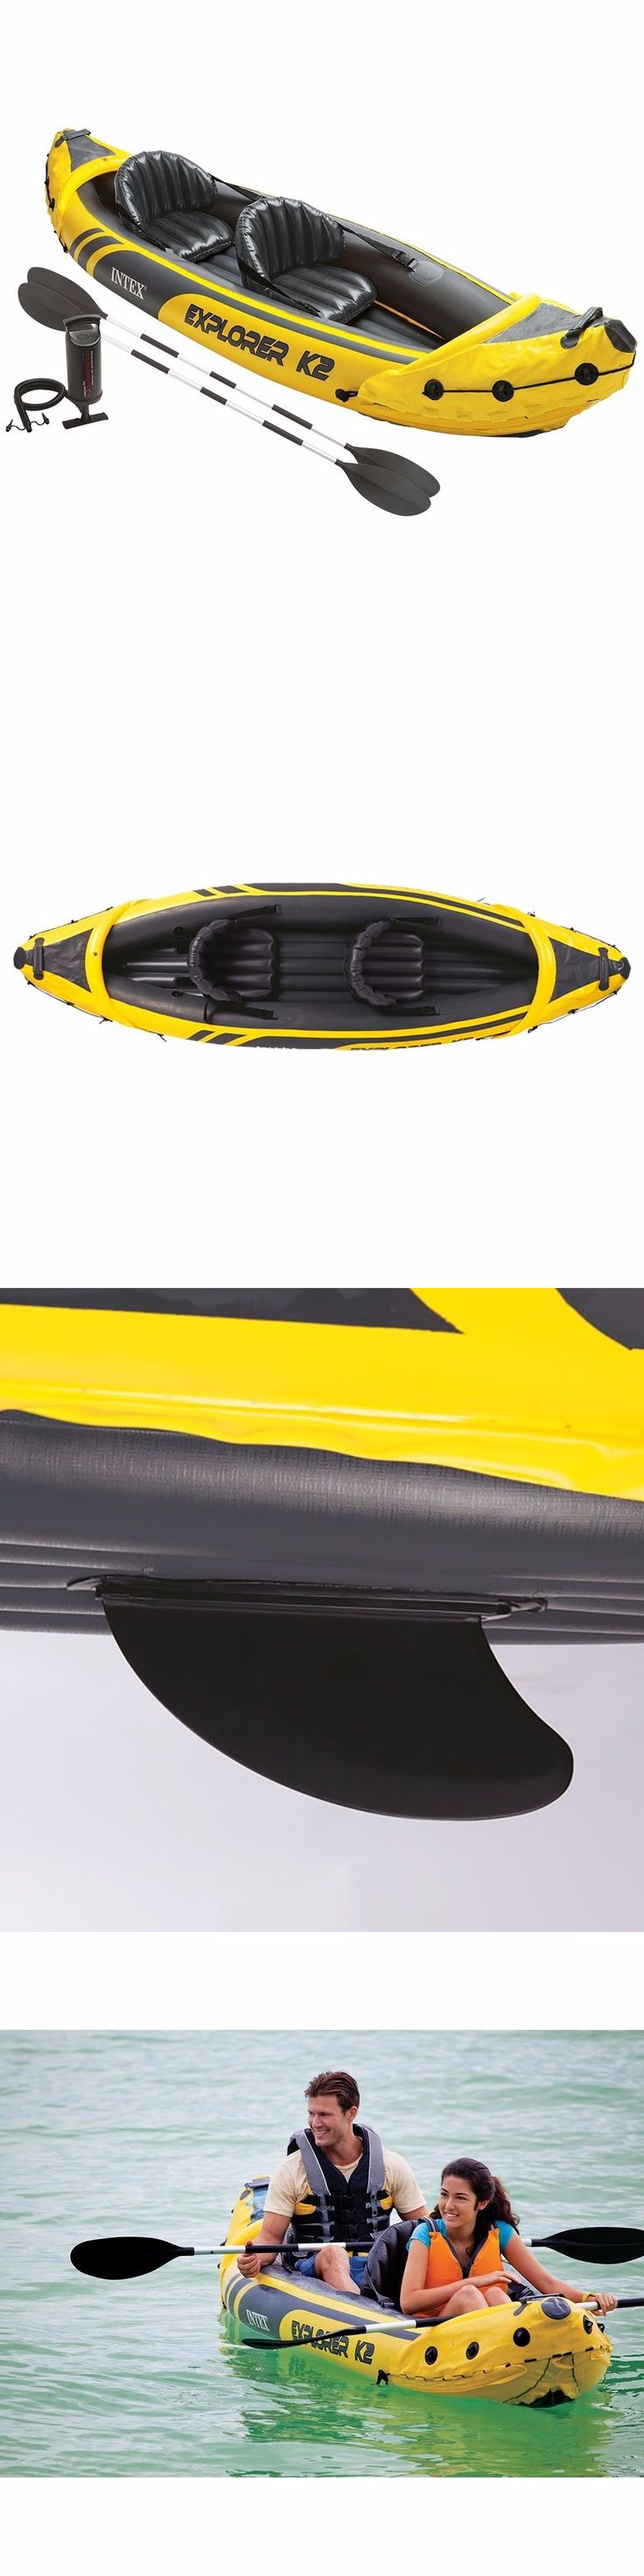 Inflatables 87090: Intex Explorer K2 Kayak, 2-Person Inflatable Kayak Set With Aluminum Oars And Pump -> BUY IT NOW ONLY: $93.99 on eBay!